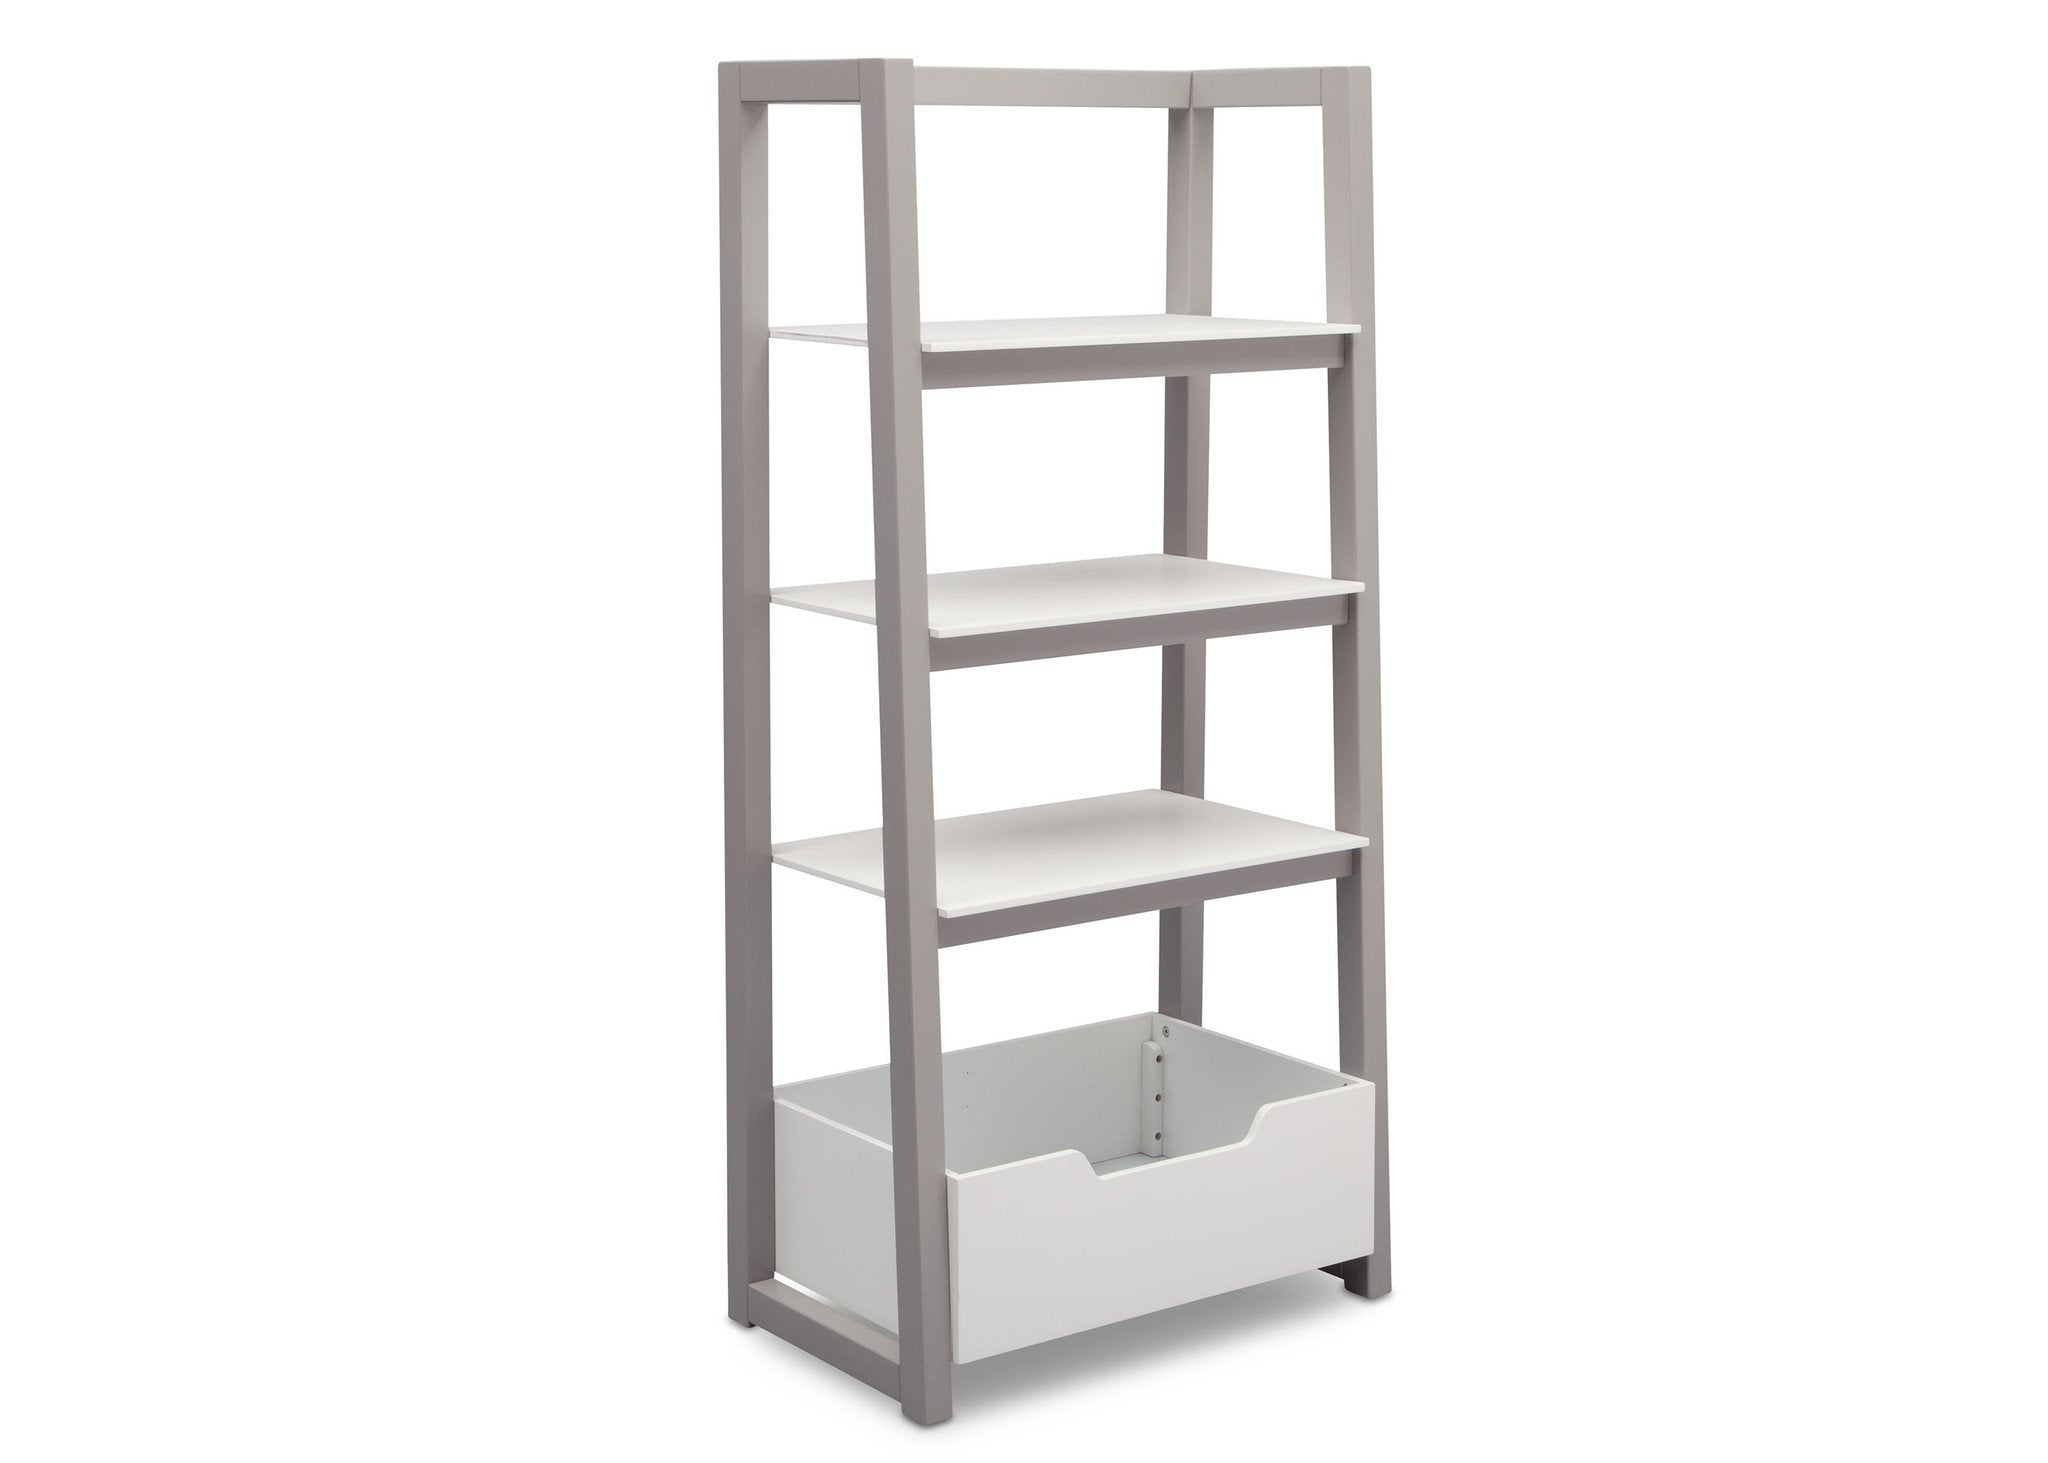 special storage sheving angle product first x concepts shelf office